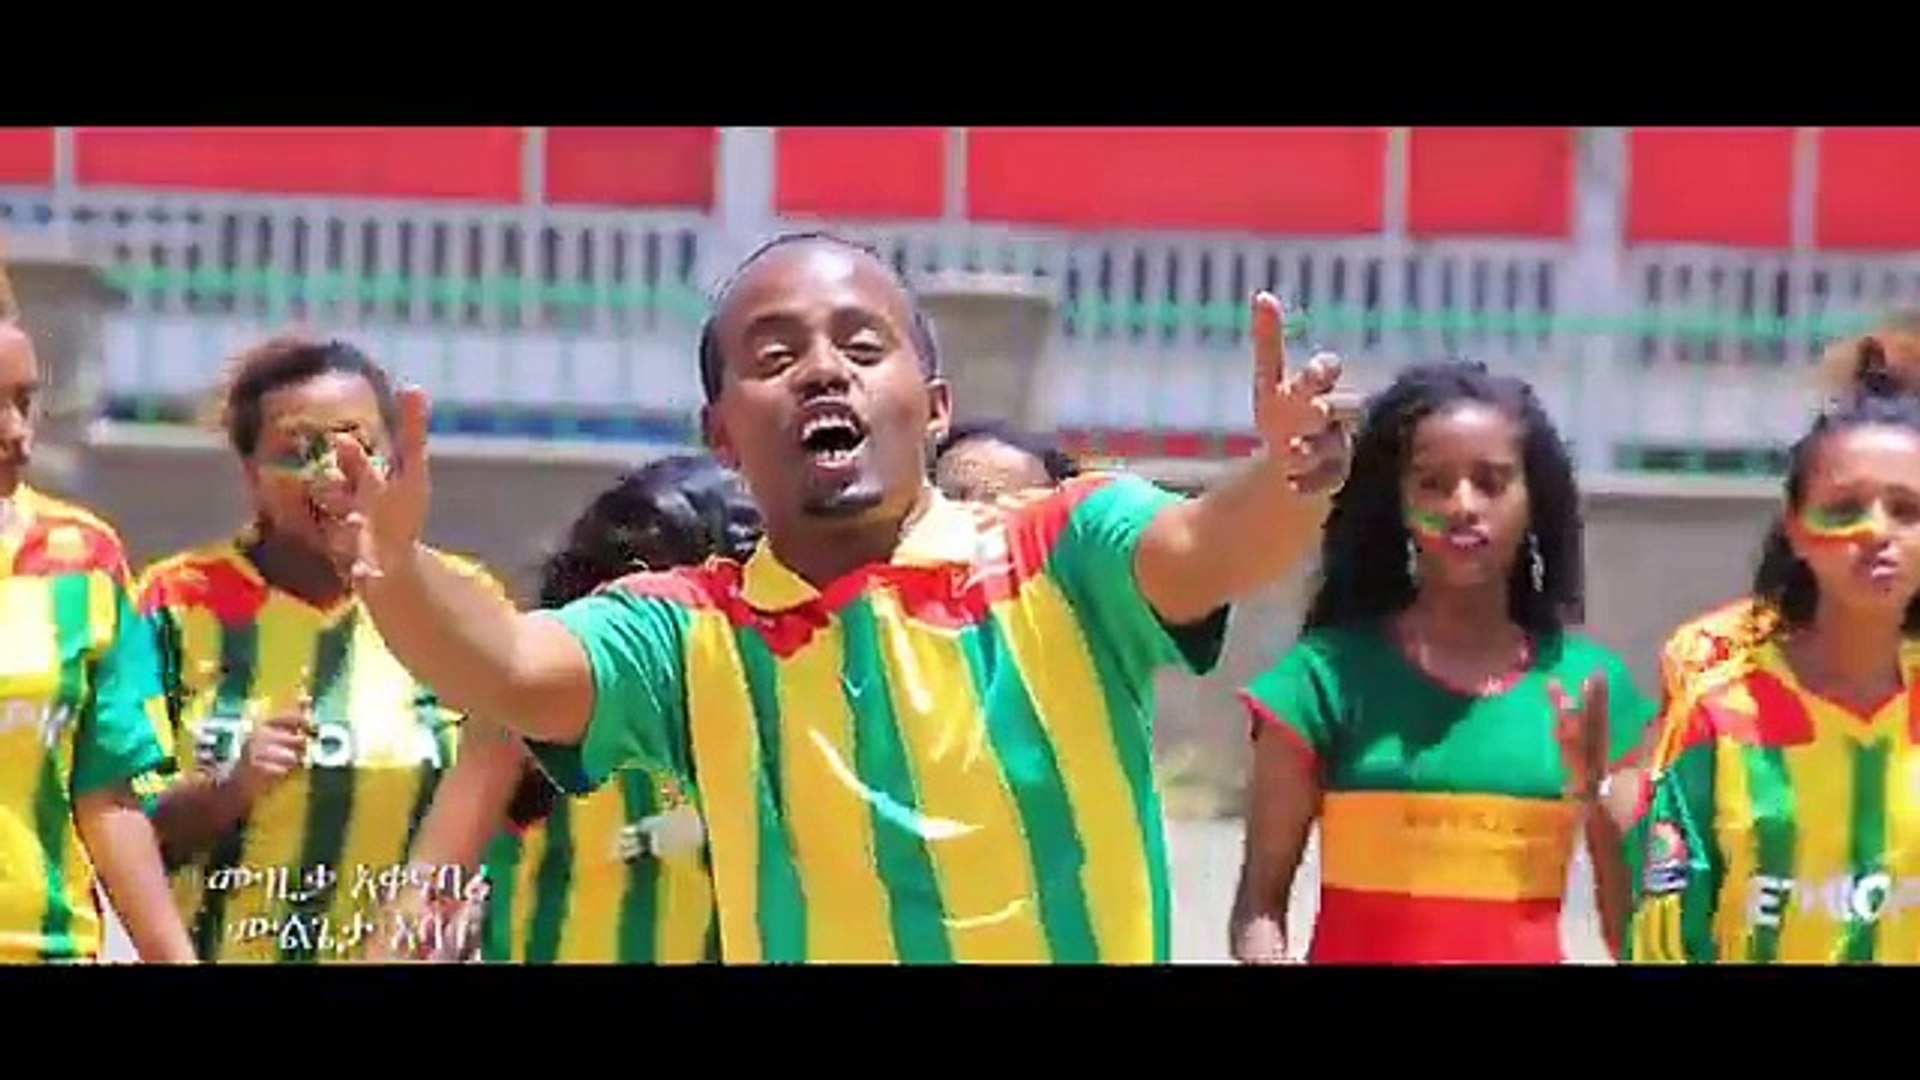 Ethiopia - Biniam Shifa - Nebise - (Official Music Video) - New Ethiopian Music 2015